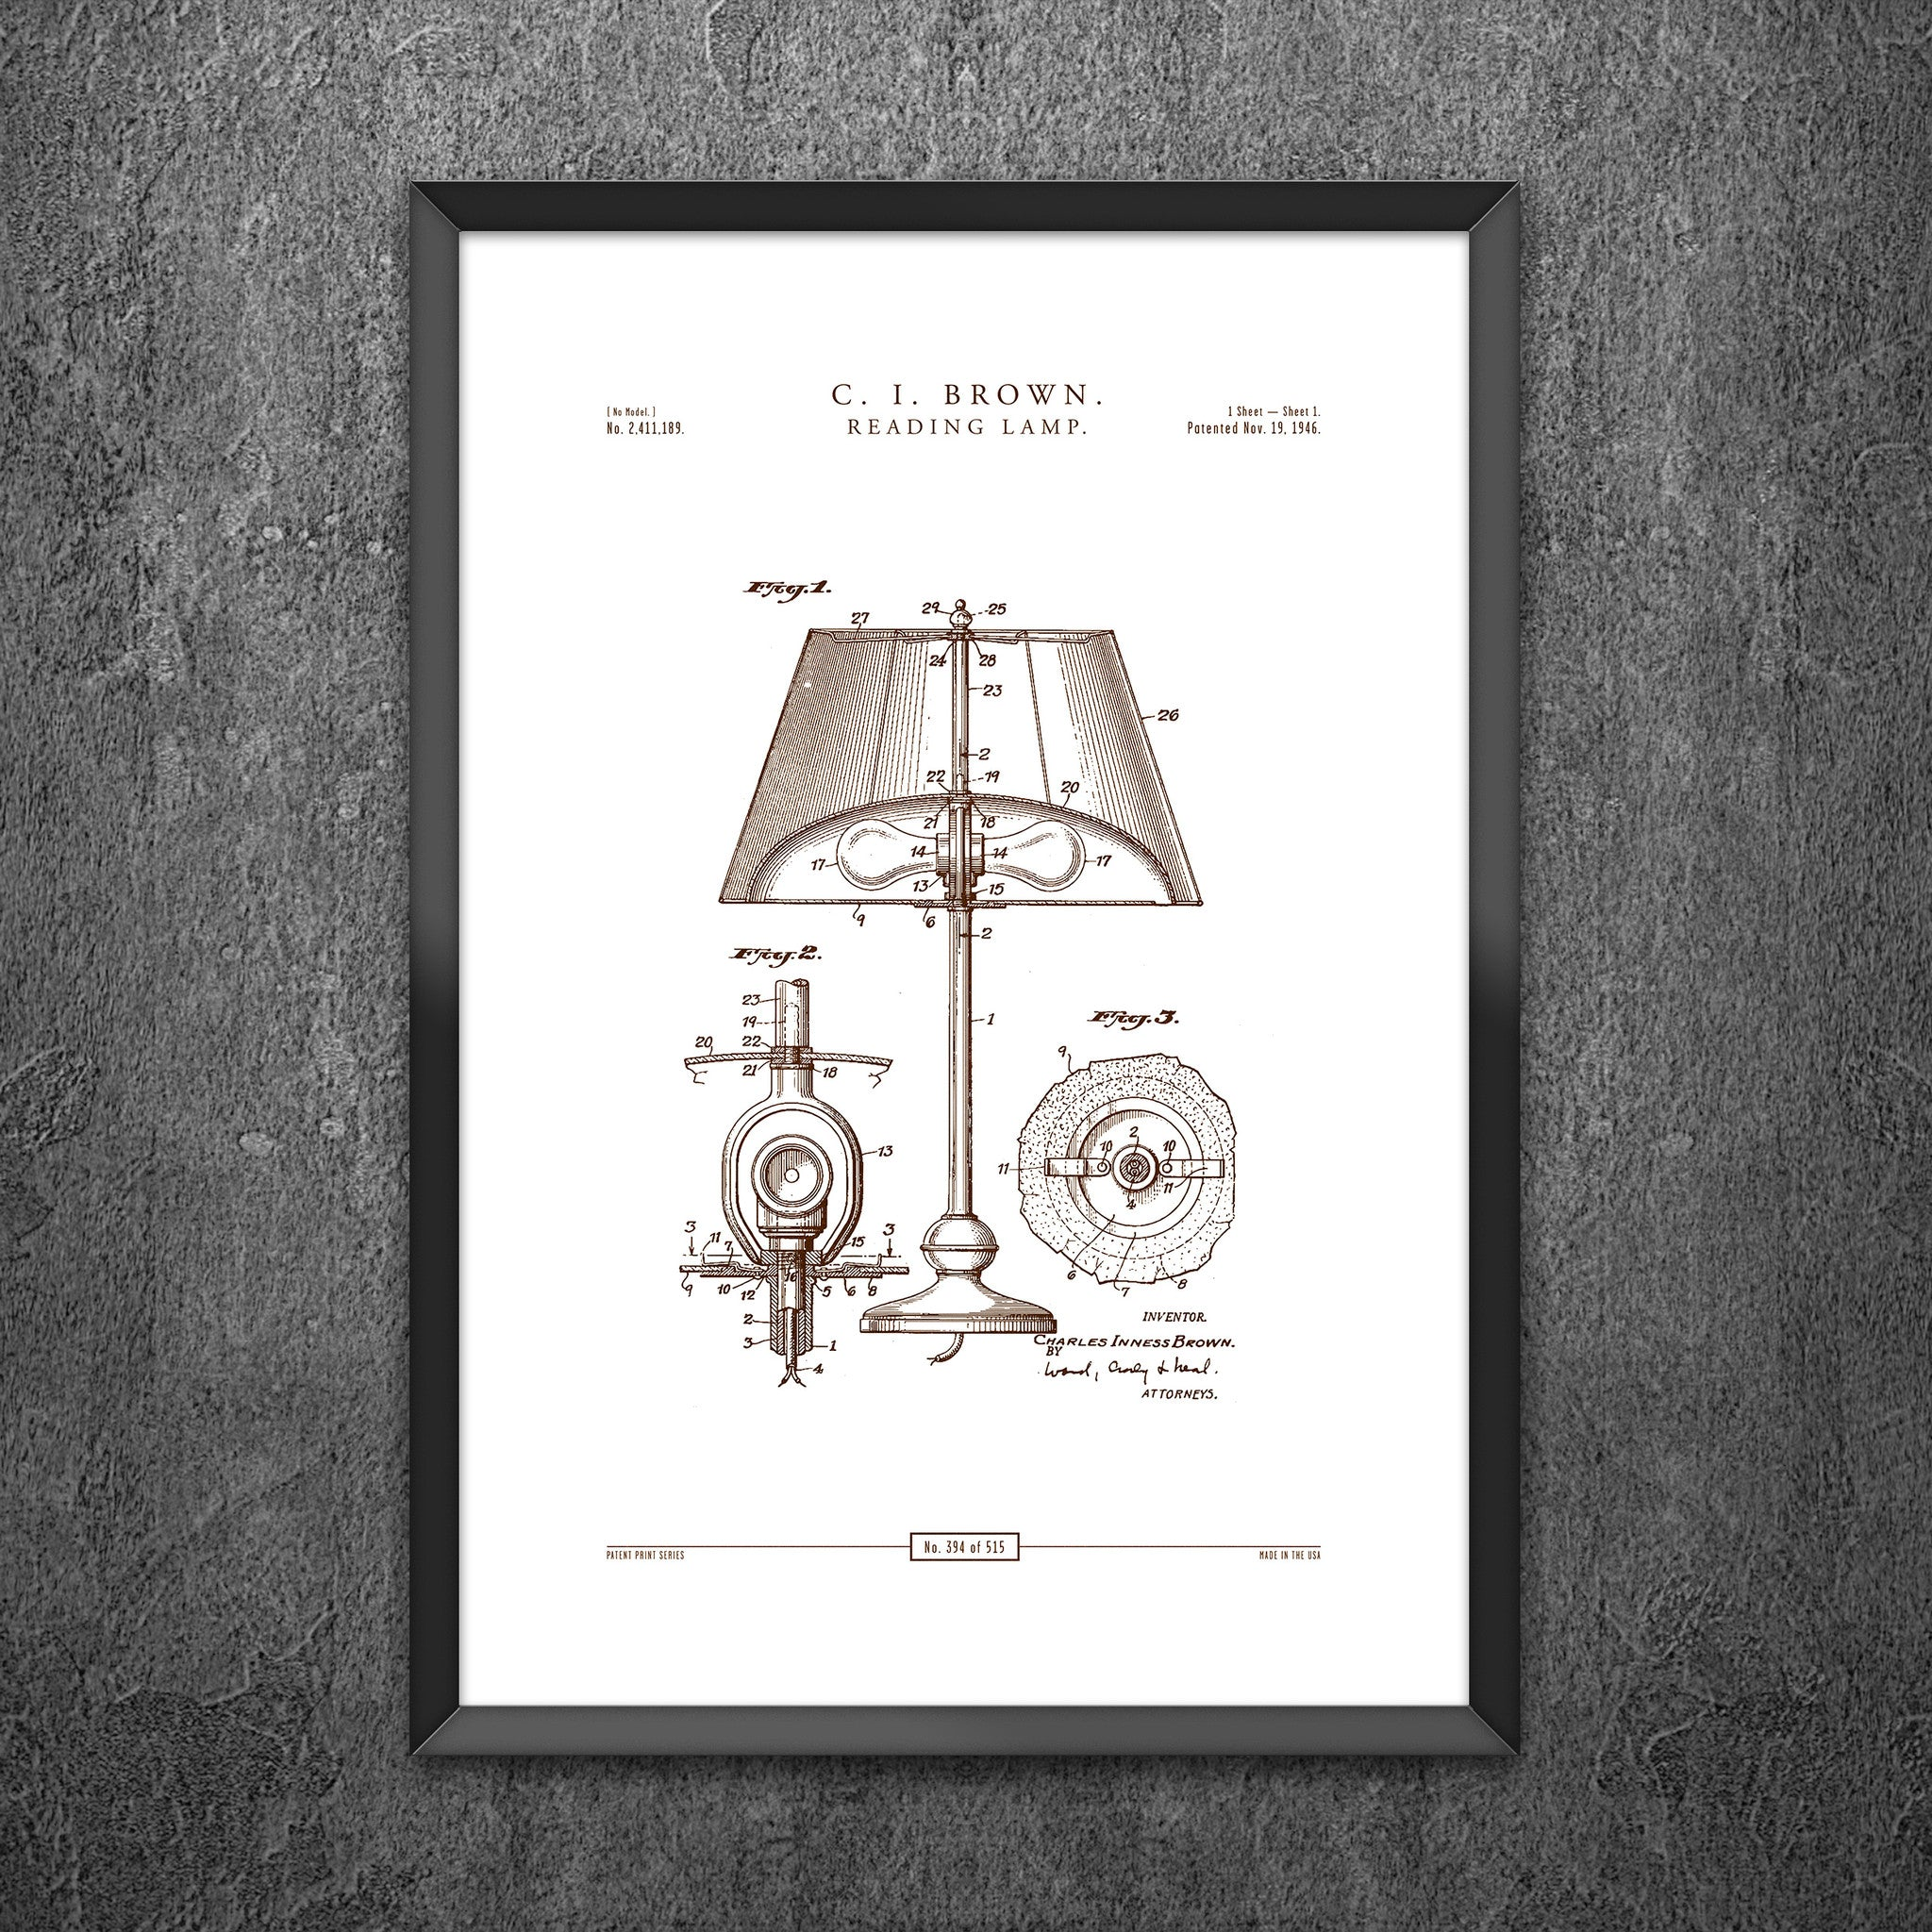 No 394 - Reading Lamp